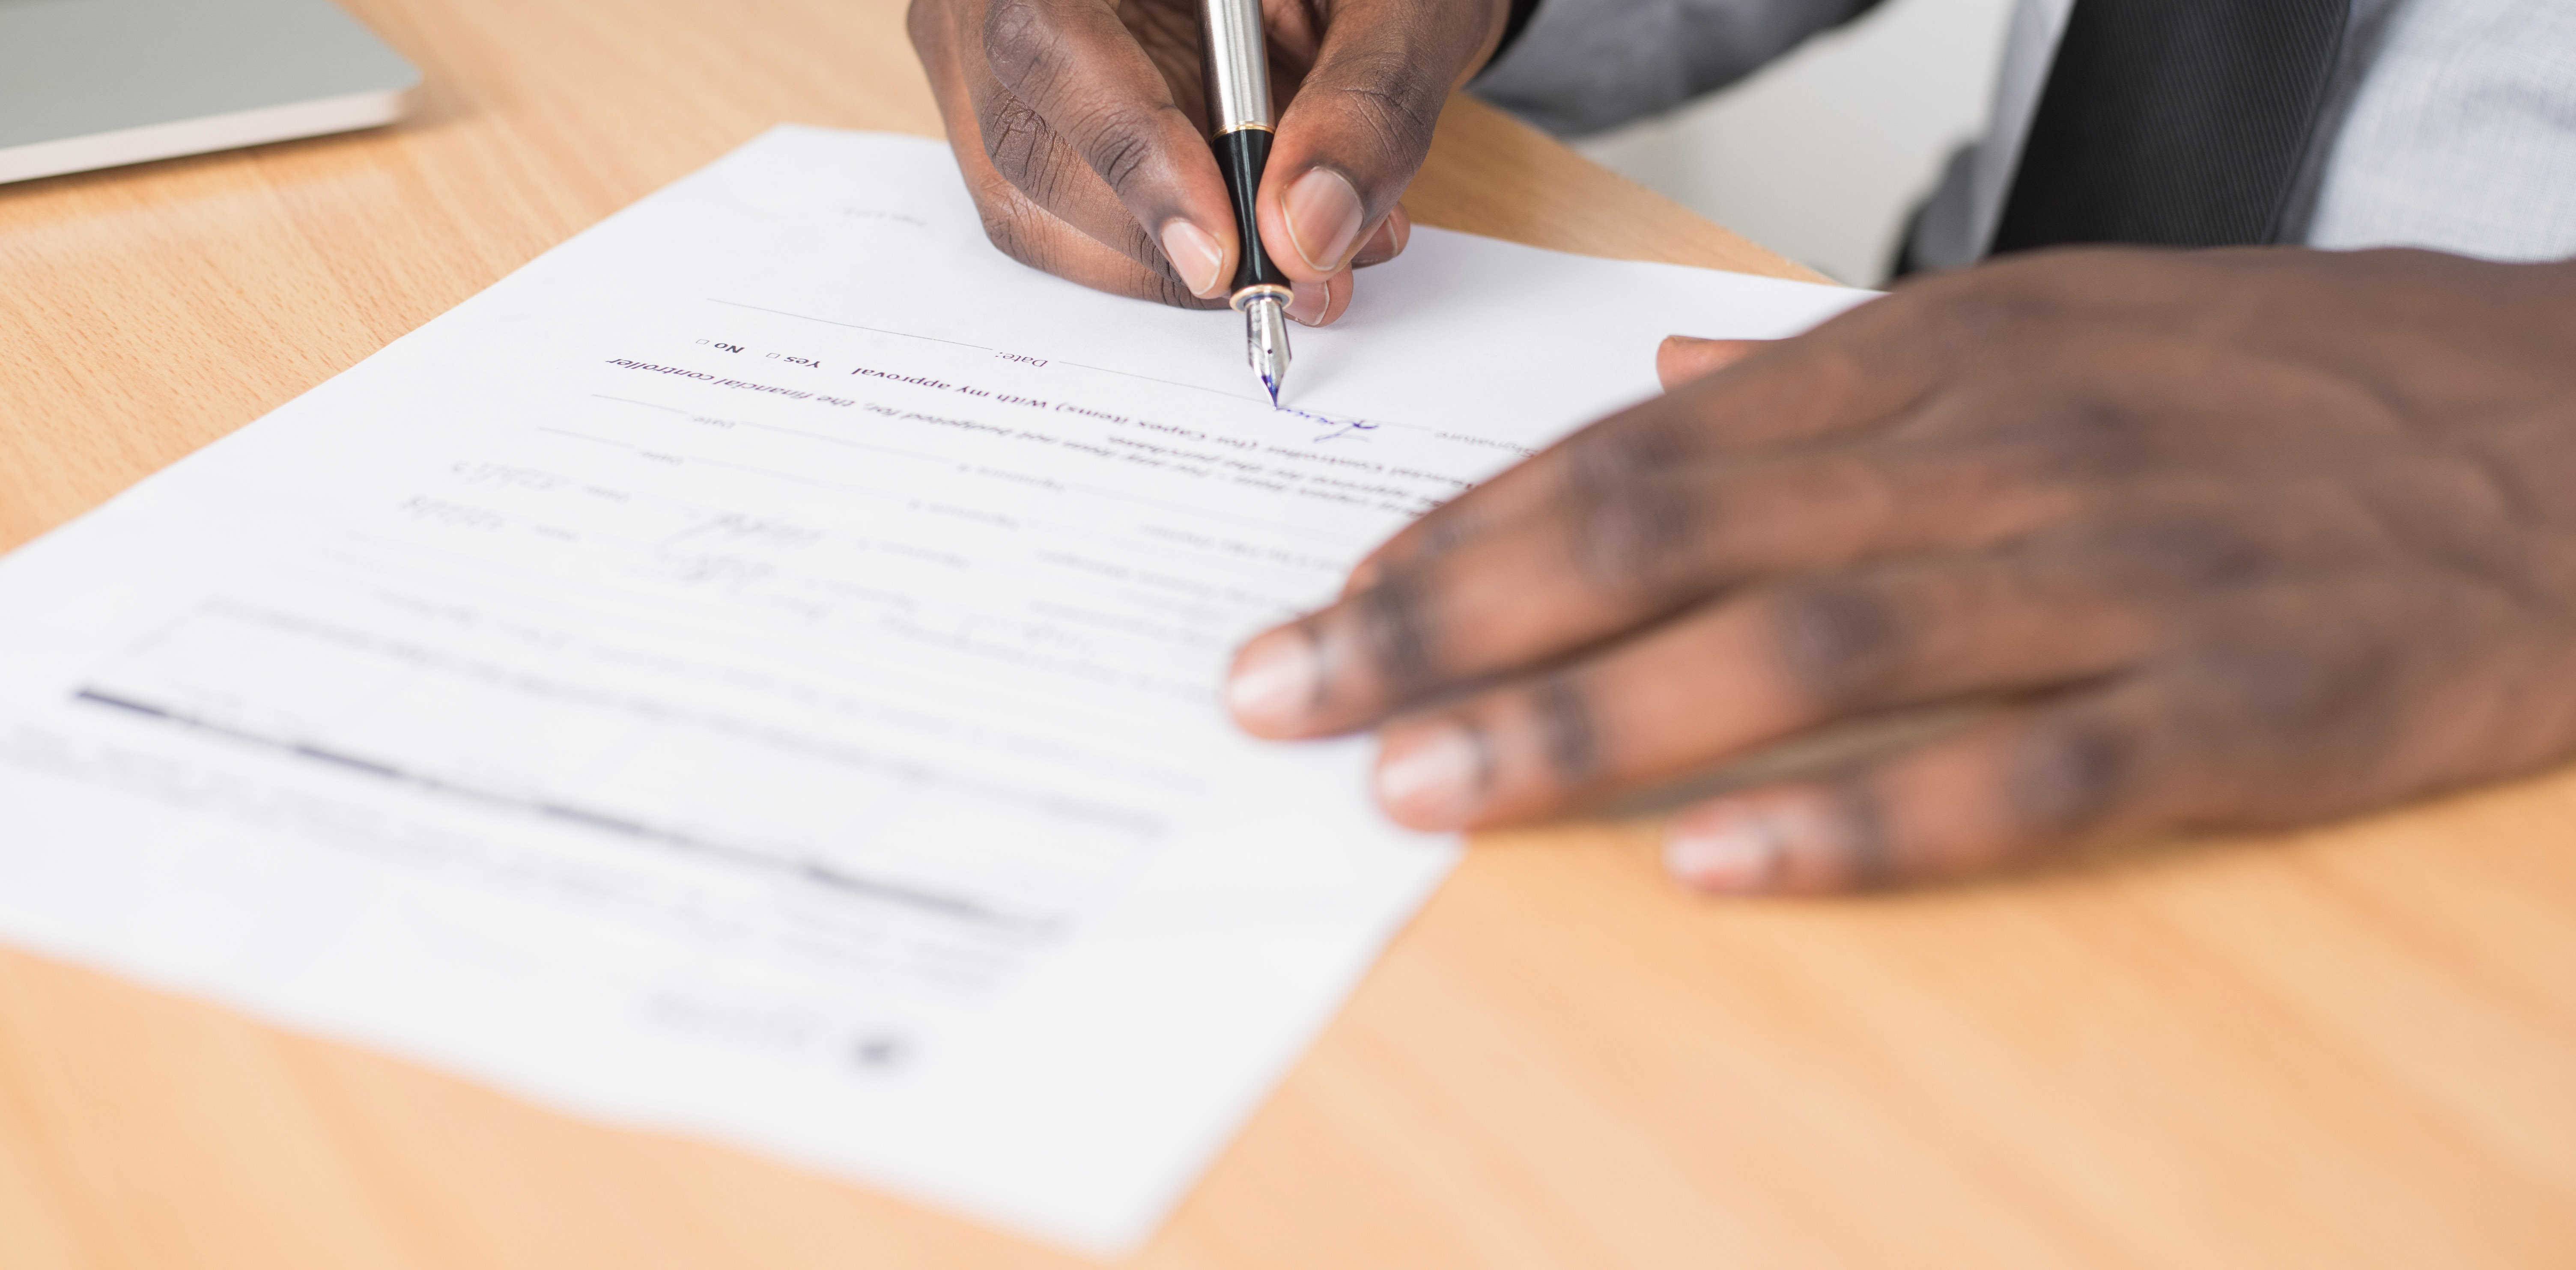 Person Signing Paper